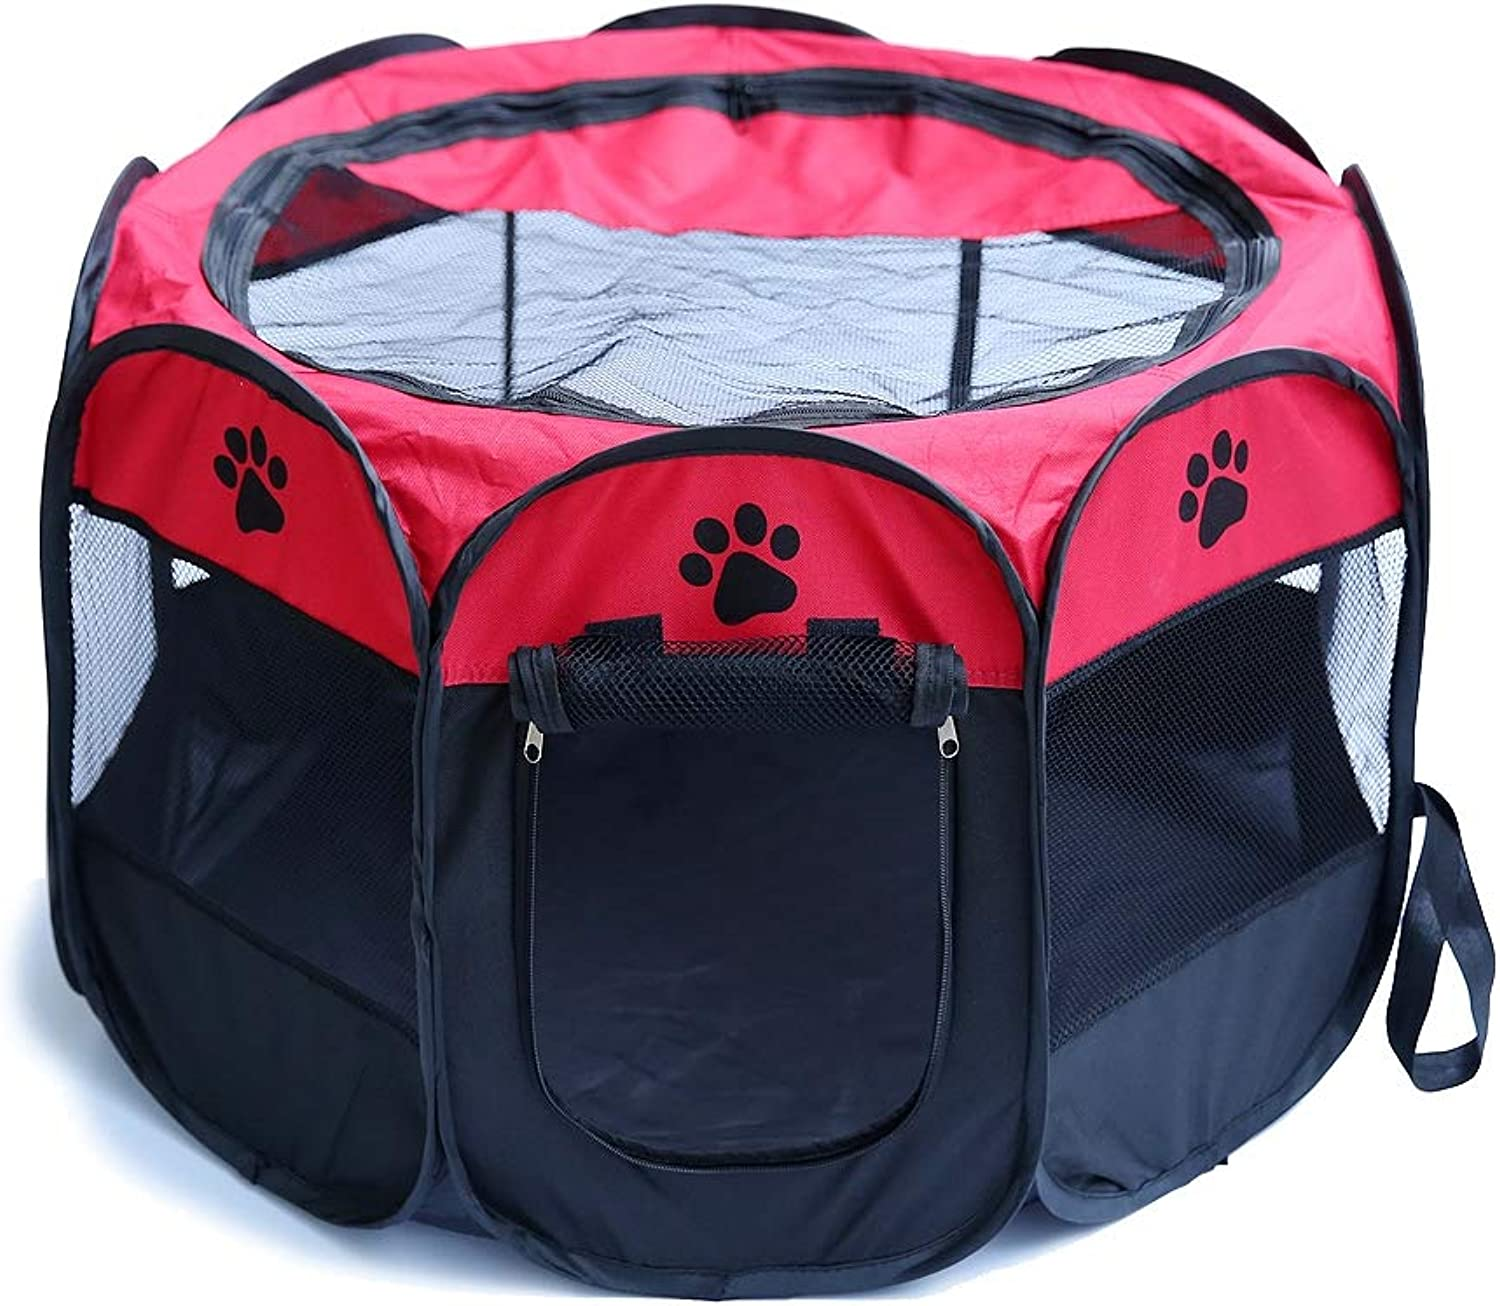 Portable Pet Tent,Breathable Folding Octagonal Pet Fence,Available Both Indoors and Outdoors,Red,M